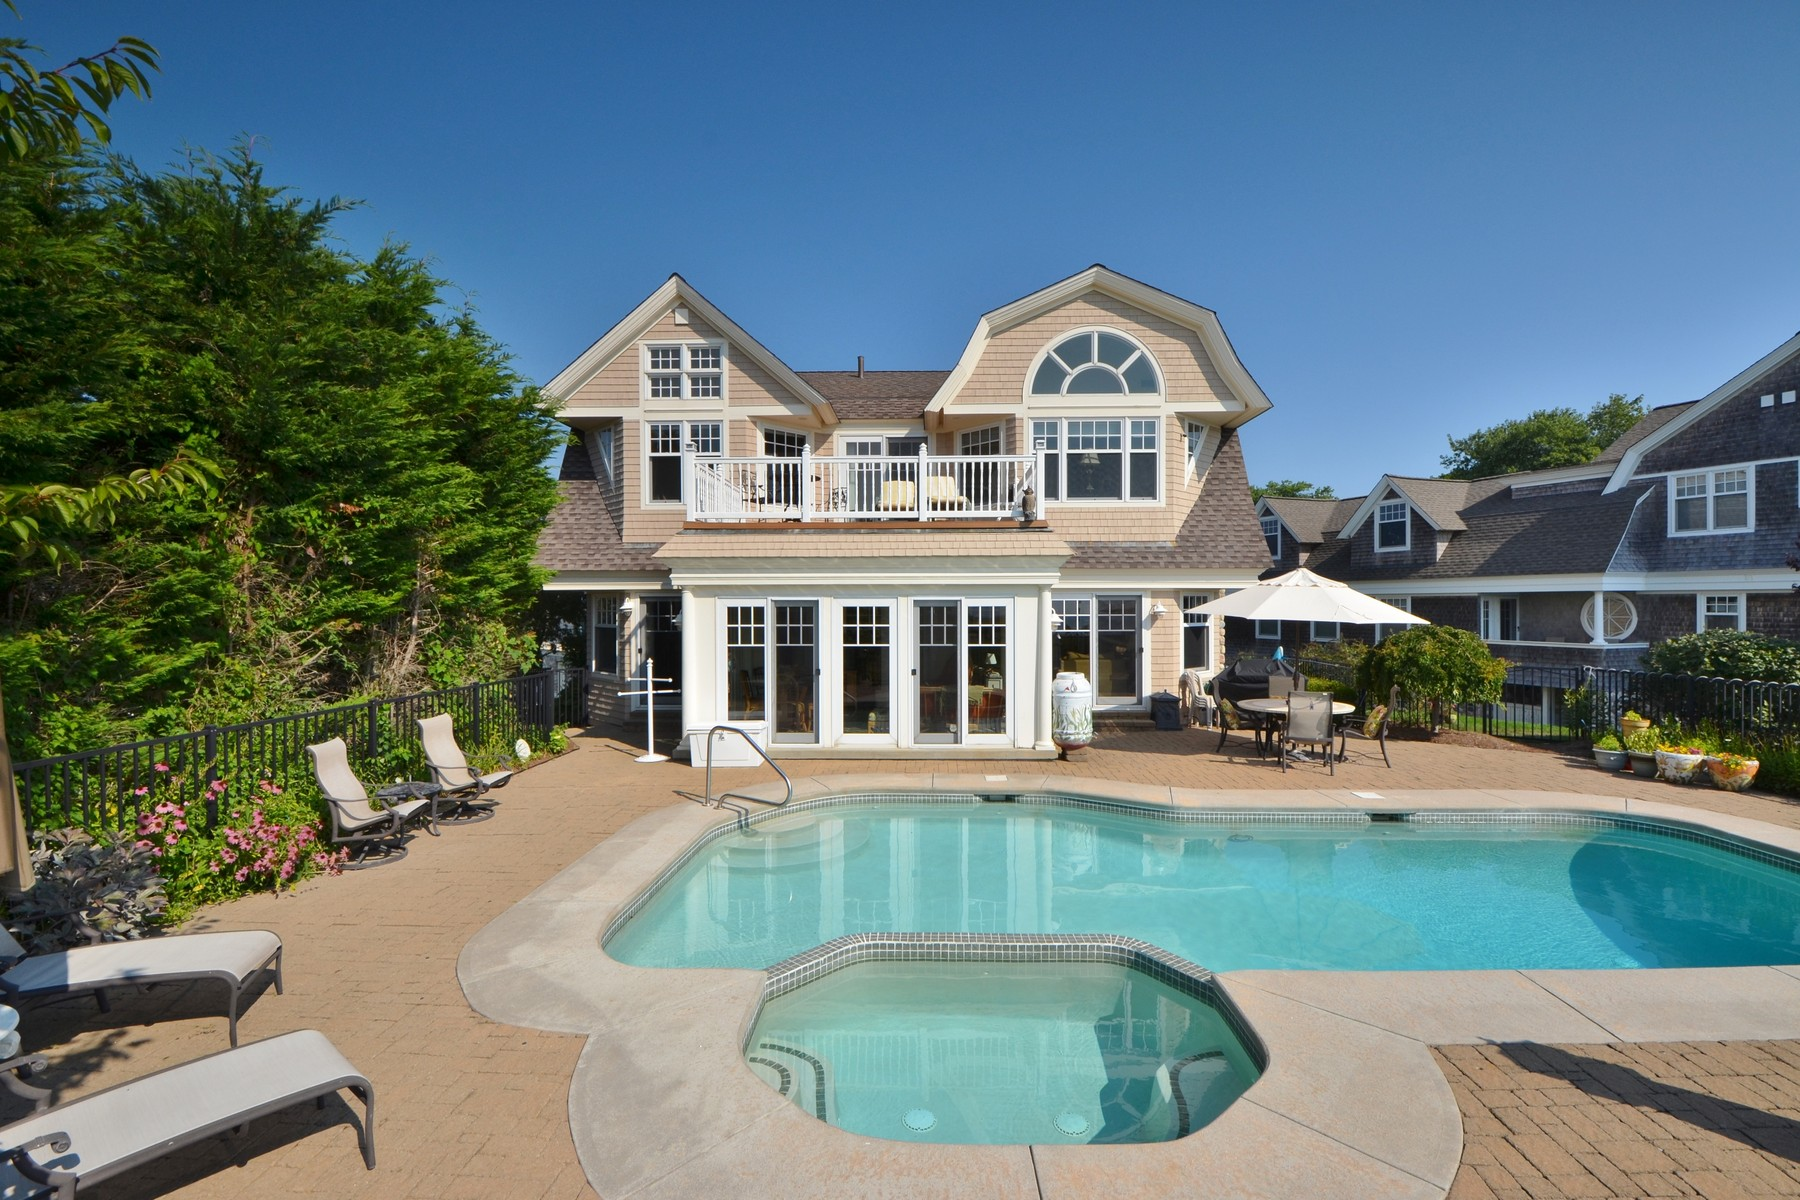 Casa Unifamiliar por un Venta en Direct Waterfront Home Overlooks Long Island Sound 10 Billow Rd Old Saybrook, Connecticut, 06475 Estados Unidos